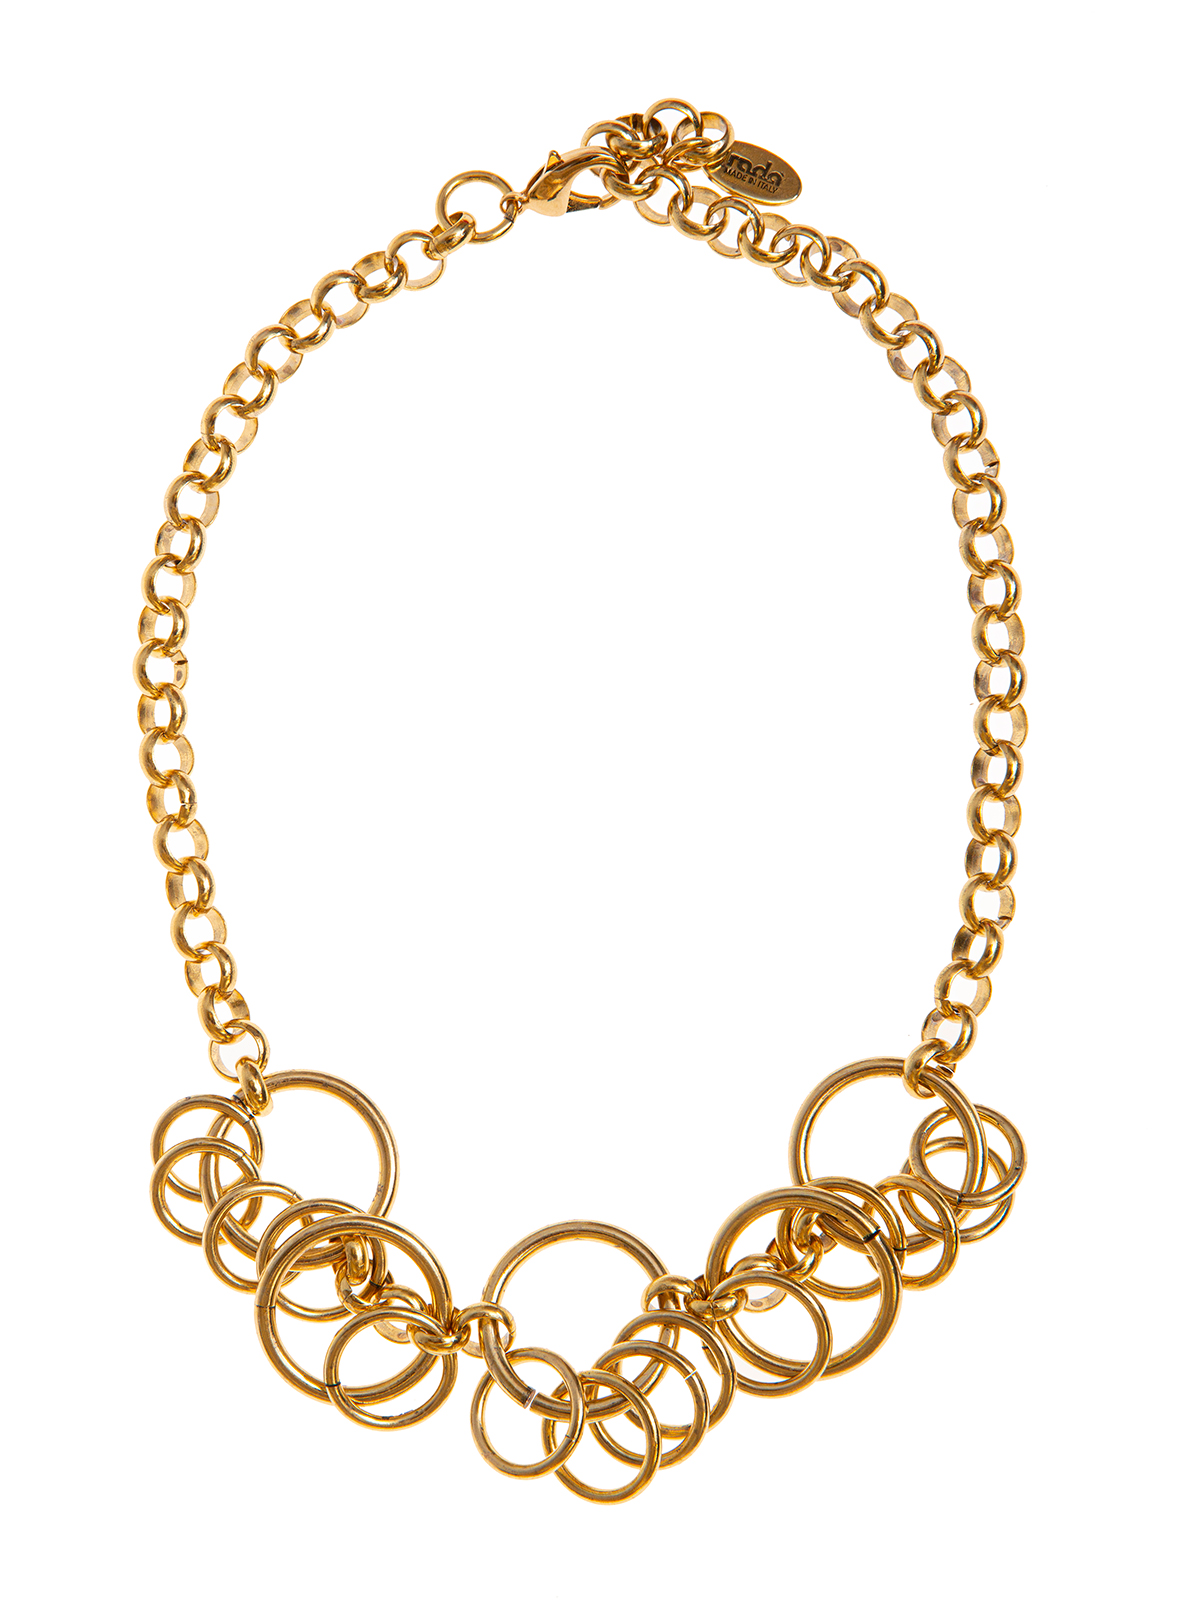 Mixed chain necklace embellished with rings